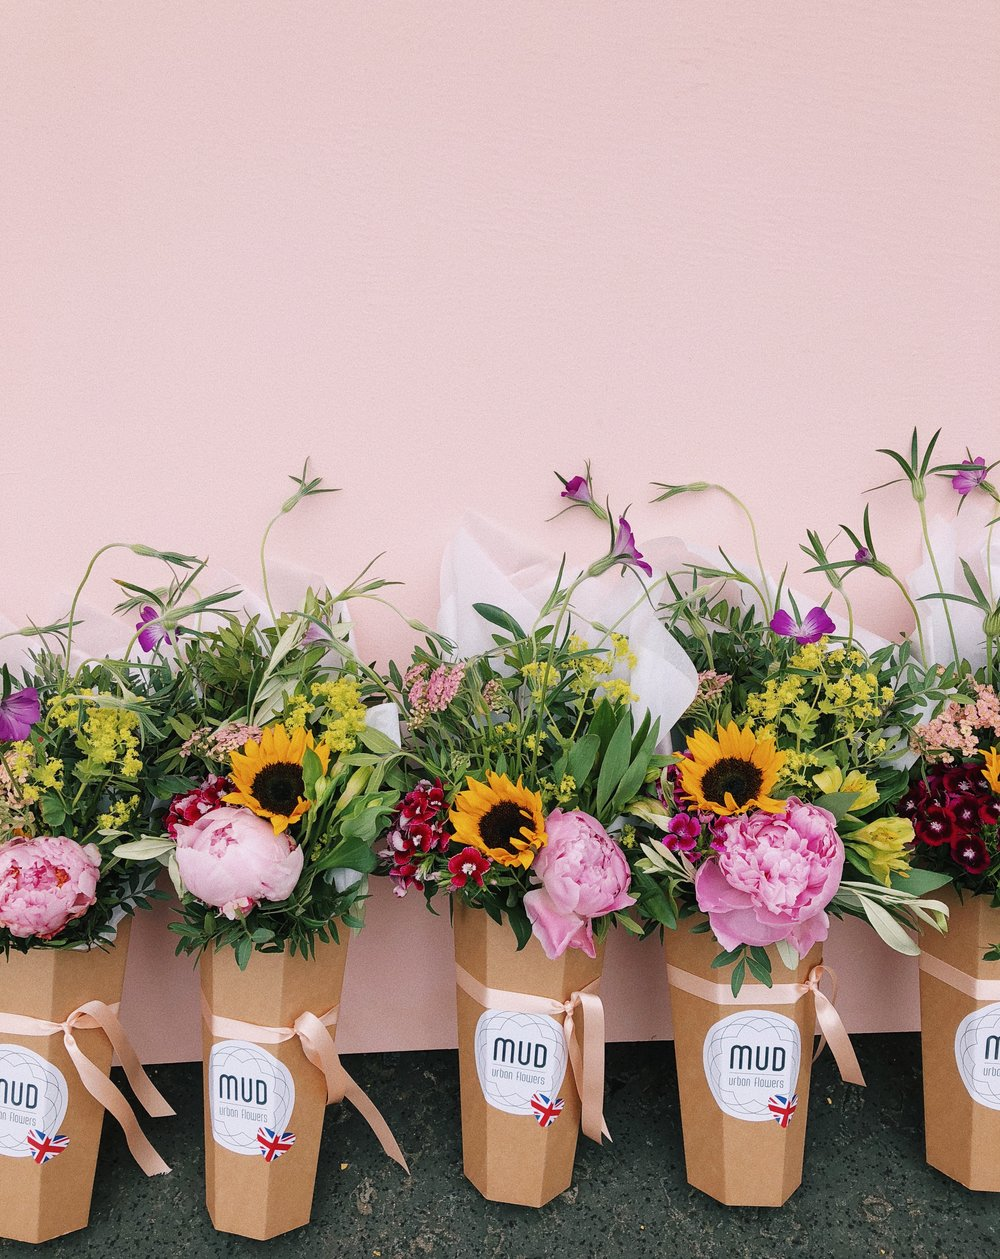 INTERESTED? - In early 2019 we will start to roll-out our franchisee programme. A Mud Urban Flowers franchise is suitable as an add on to an already established flower business or as a start up venture.We will initially be offering franchise opportunities in Aberdeen, Stirling, Dundee, Inverness, Newcastle, Leeds and Manchester.To be one of the first to hear about this exciting venture, please sign up below.